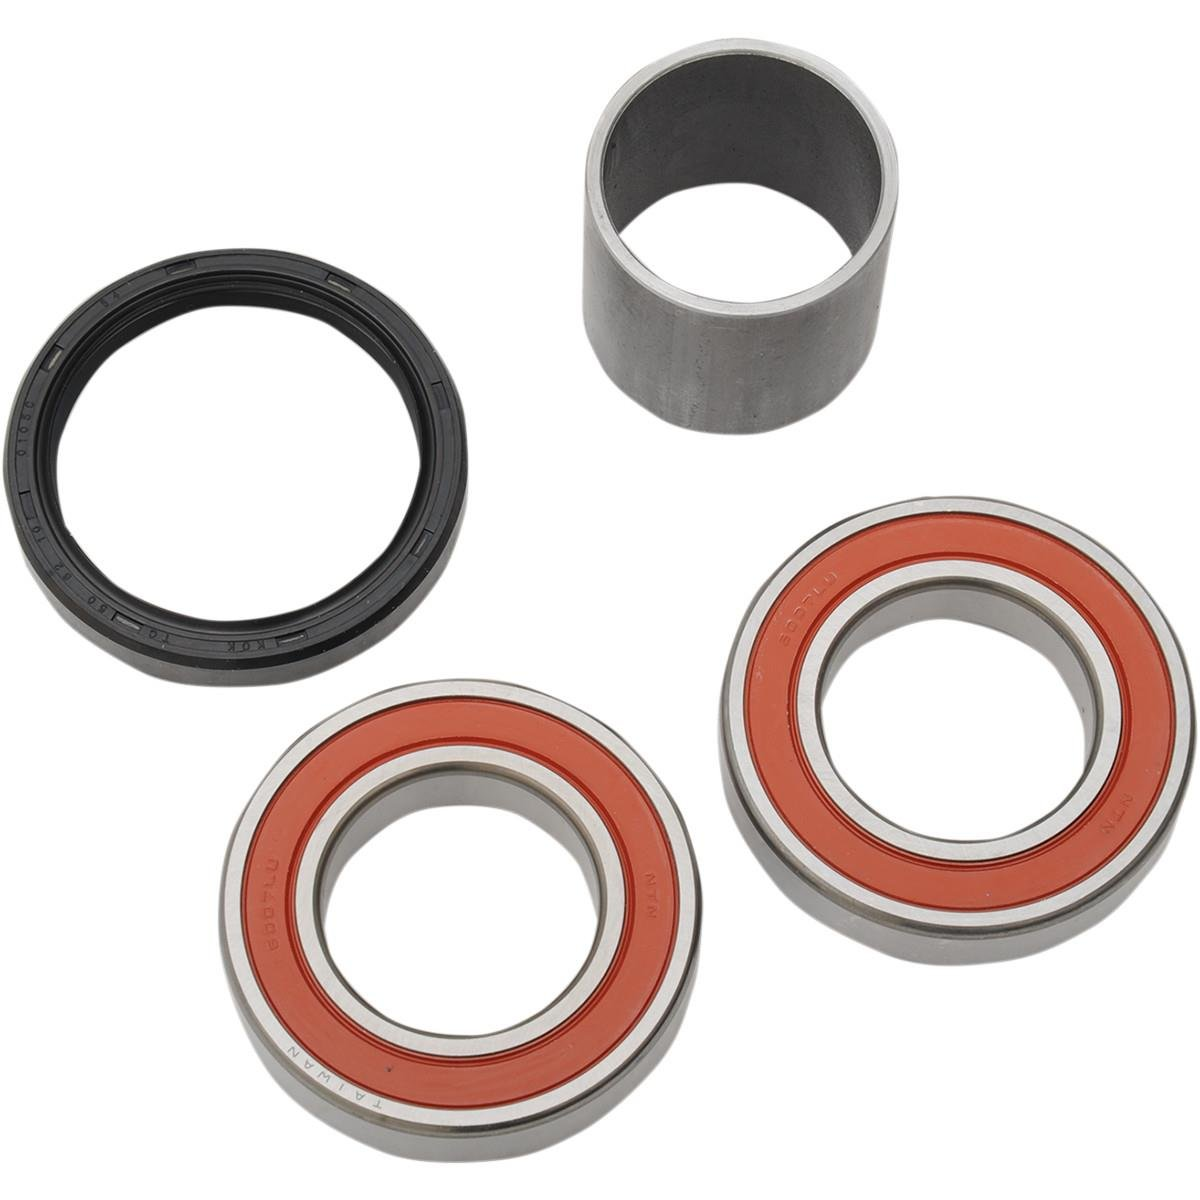 Camoplast 7090-00-0001 Tatou 4S Track System S-Kit 2 Bearings by Camoplast